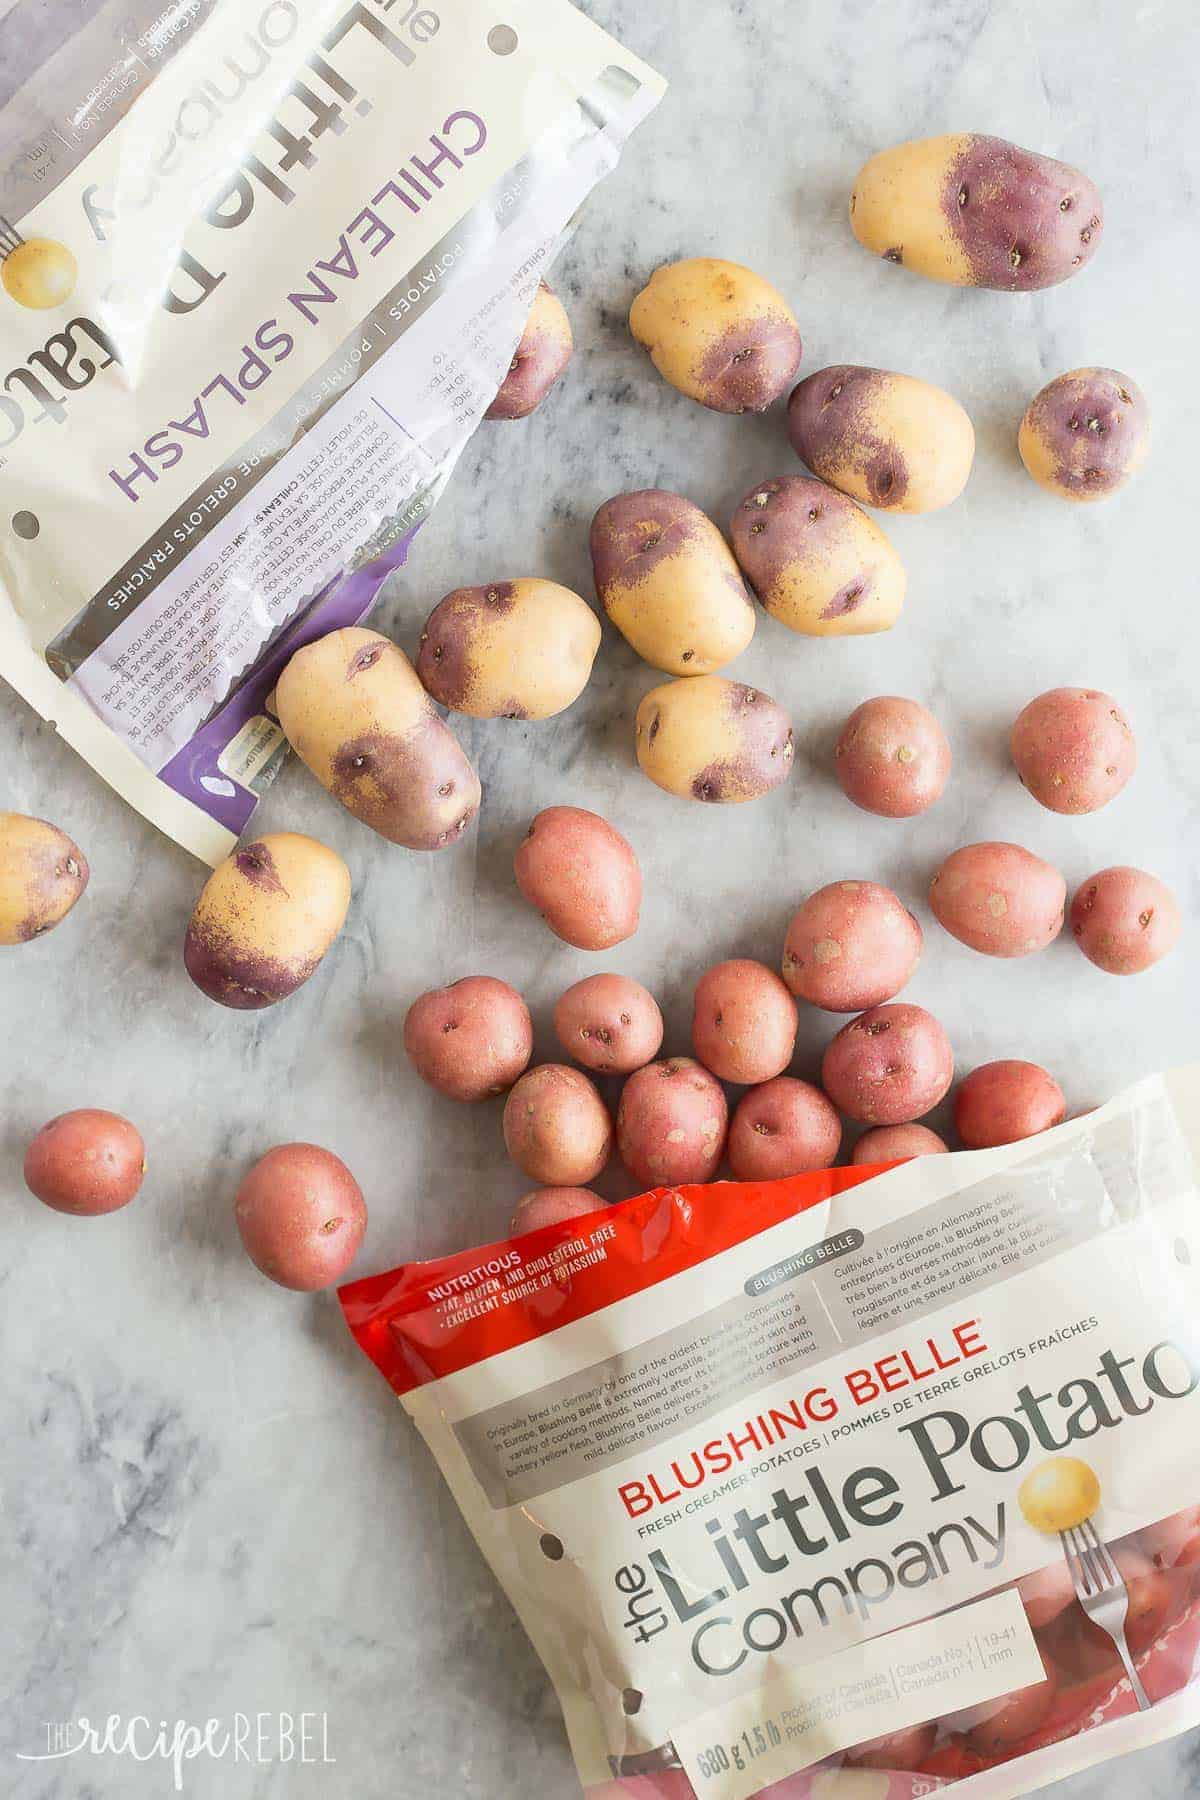 blushing belle and purple little potatoes spilled out on marble background